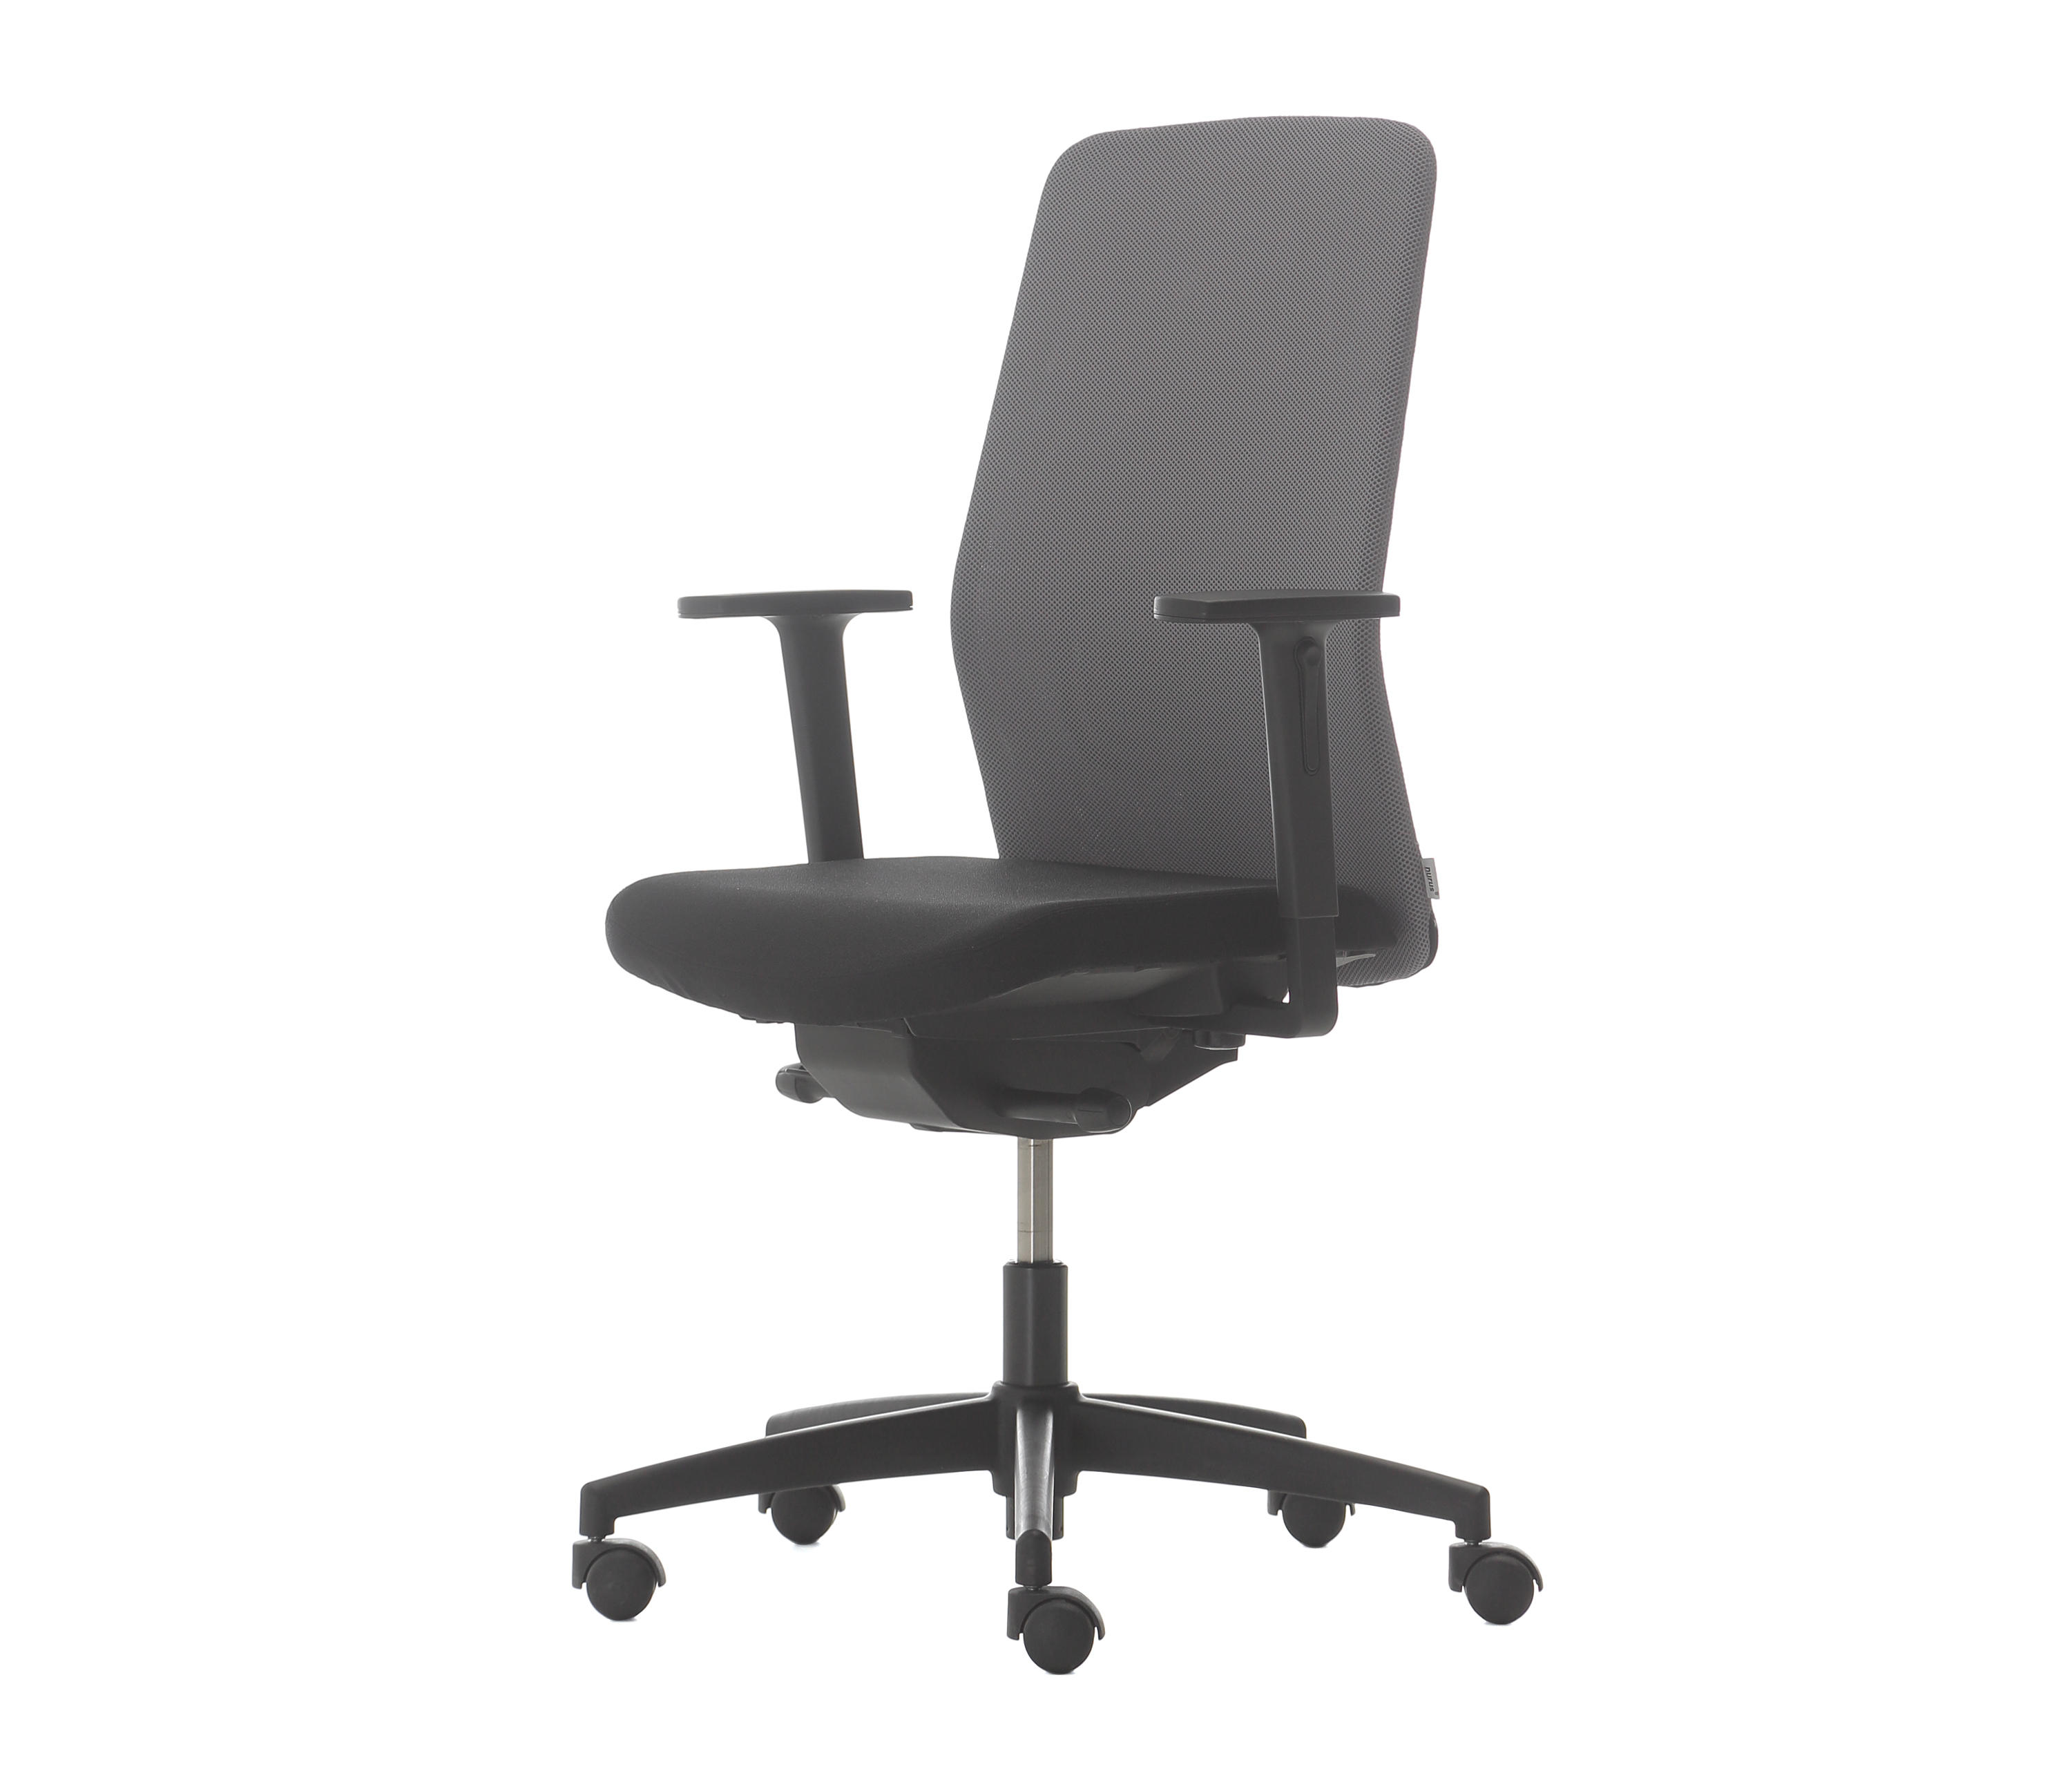 D Chair Pro Support® With Lumbar By Nurus | Office Chairs ...